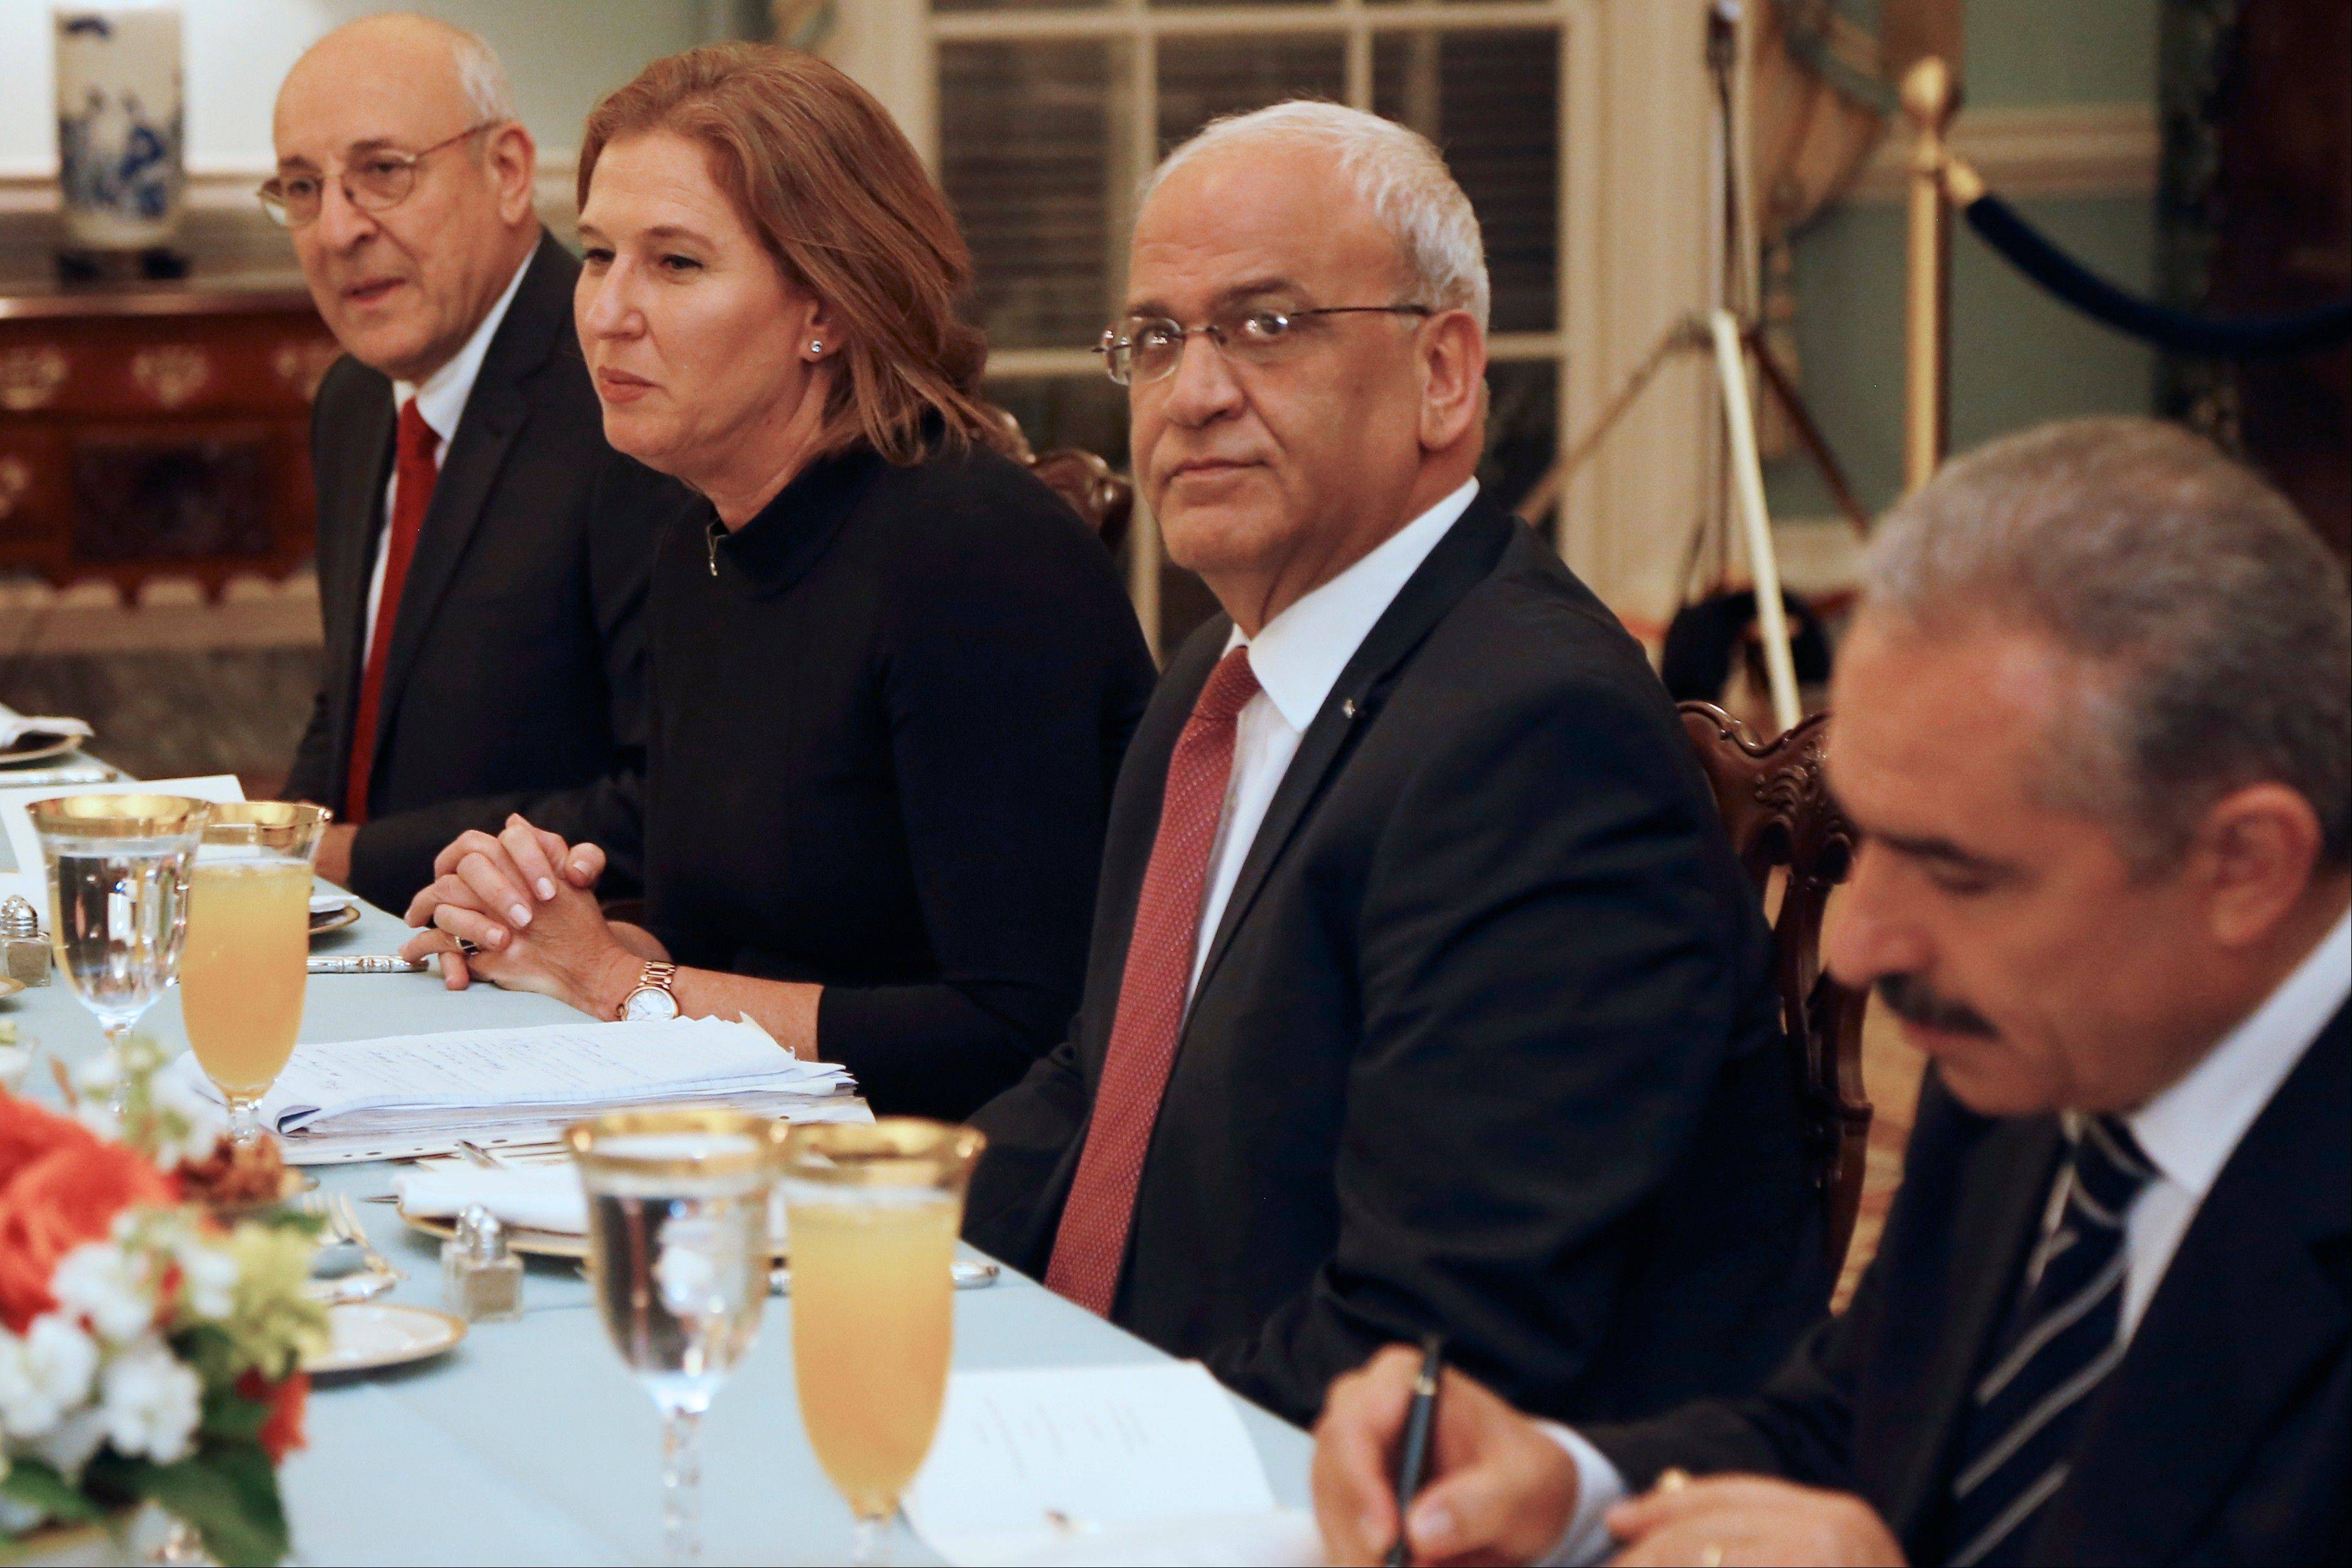 Israel�s Justice Minister and chief negotiator Tzipi Livni, second from left, Palestinian chief negotiator Saeb Erekat, second right, Yitzhak Molcho, an adviser to Israeli Prime Minister Benjamin Netanyahu, left, and Mohammed Shtayyeh, aide to Palestinian President Mahmoud Abbas, right, attend an Iftar dinner, which celebrates Ramadan, hosted by Secretary of State John Kerry at the State Department Monday.